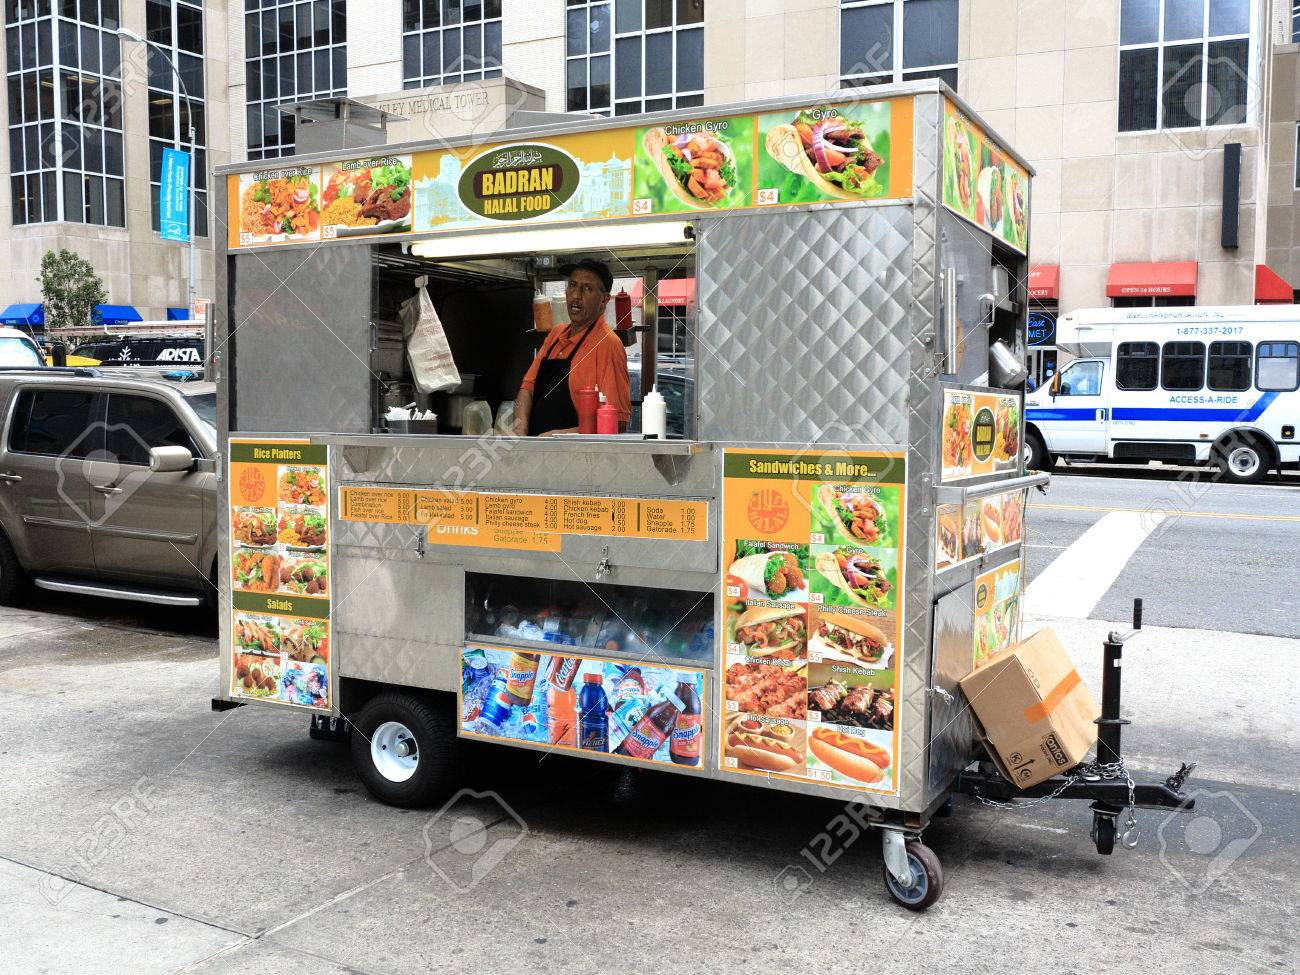 New York - August 11, 2015: Food stand on a Manhattan street